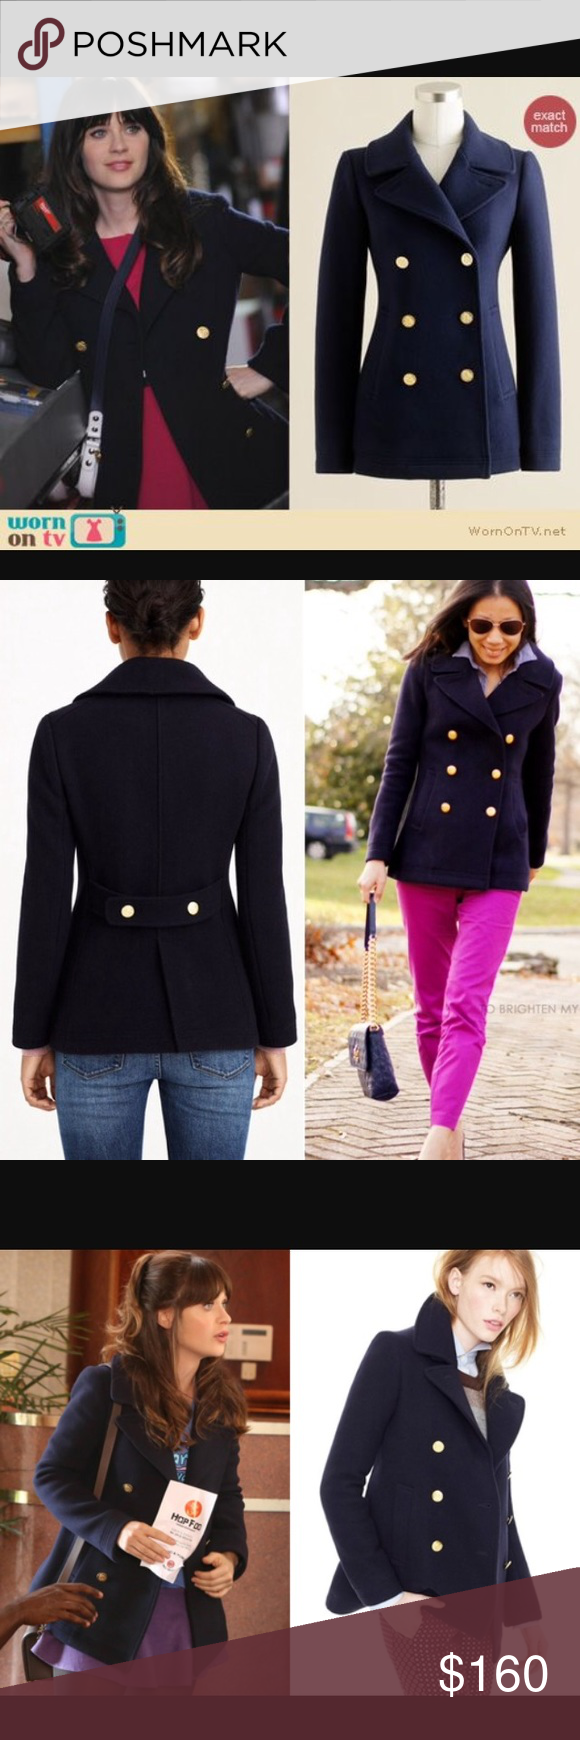 ✨J.Crew Majesty Navy Peacoat✨ This piece is a CLASSIC!! This coat cost almost $400 in stores and it's in perfect condition! J. Crew Jackets & Coats Pea Coats